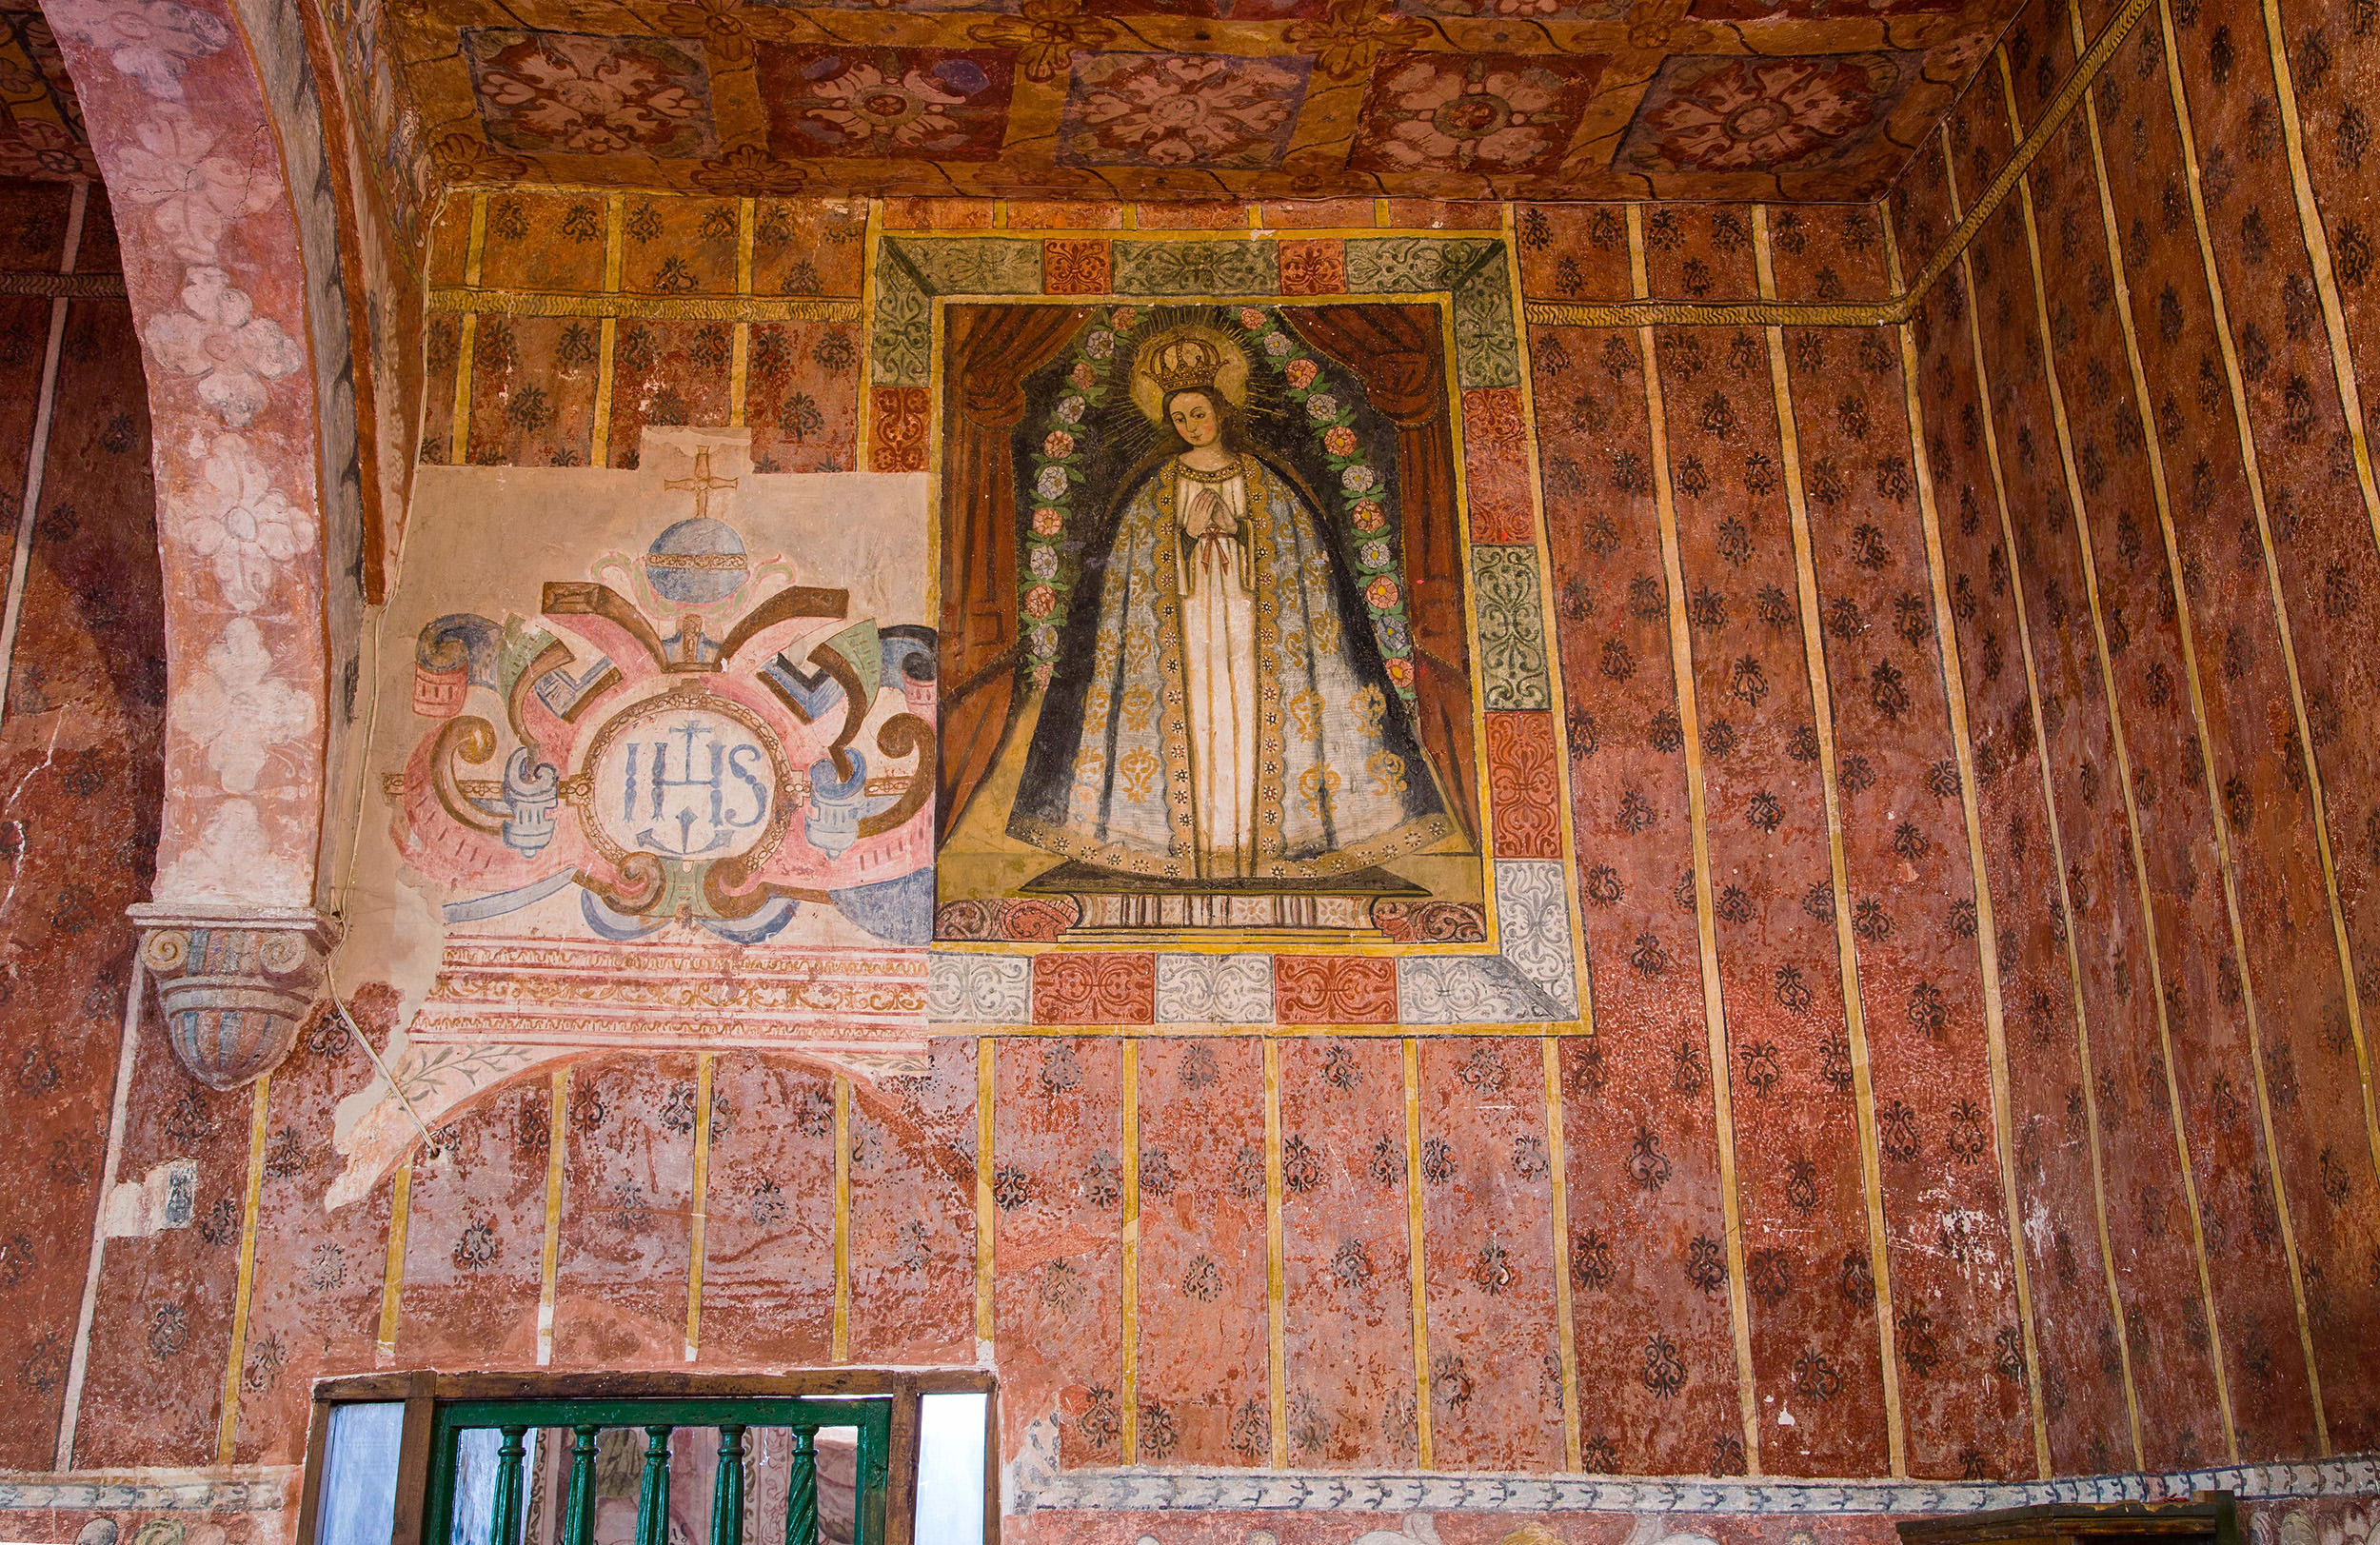 Fig. 23 Detail, textile murals with earlier phase of mural decoration revealed by restorers. The shift in design reflects changing tastes and a growing interest in textile murals by the late 17th century. Even the painting of the Virgin features a red curtain encased by a trompe l'oeil frame made to look as if it were wrapped in fine cloth. Church of Oropesa, Quispicanchi Province. Photo by Raúl Montero Quispe.